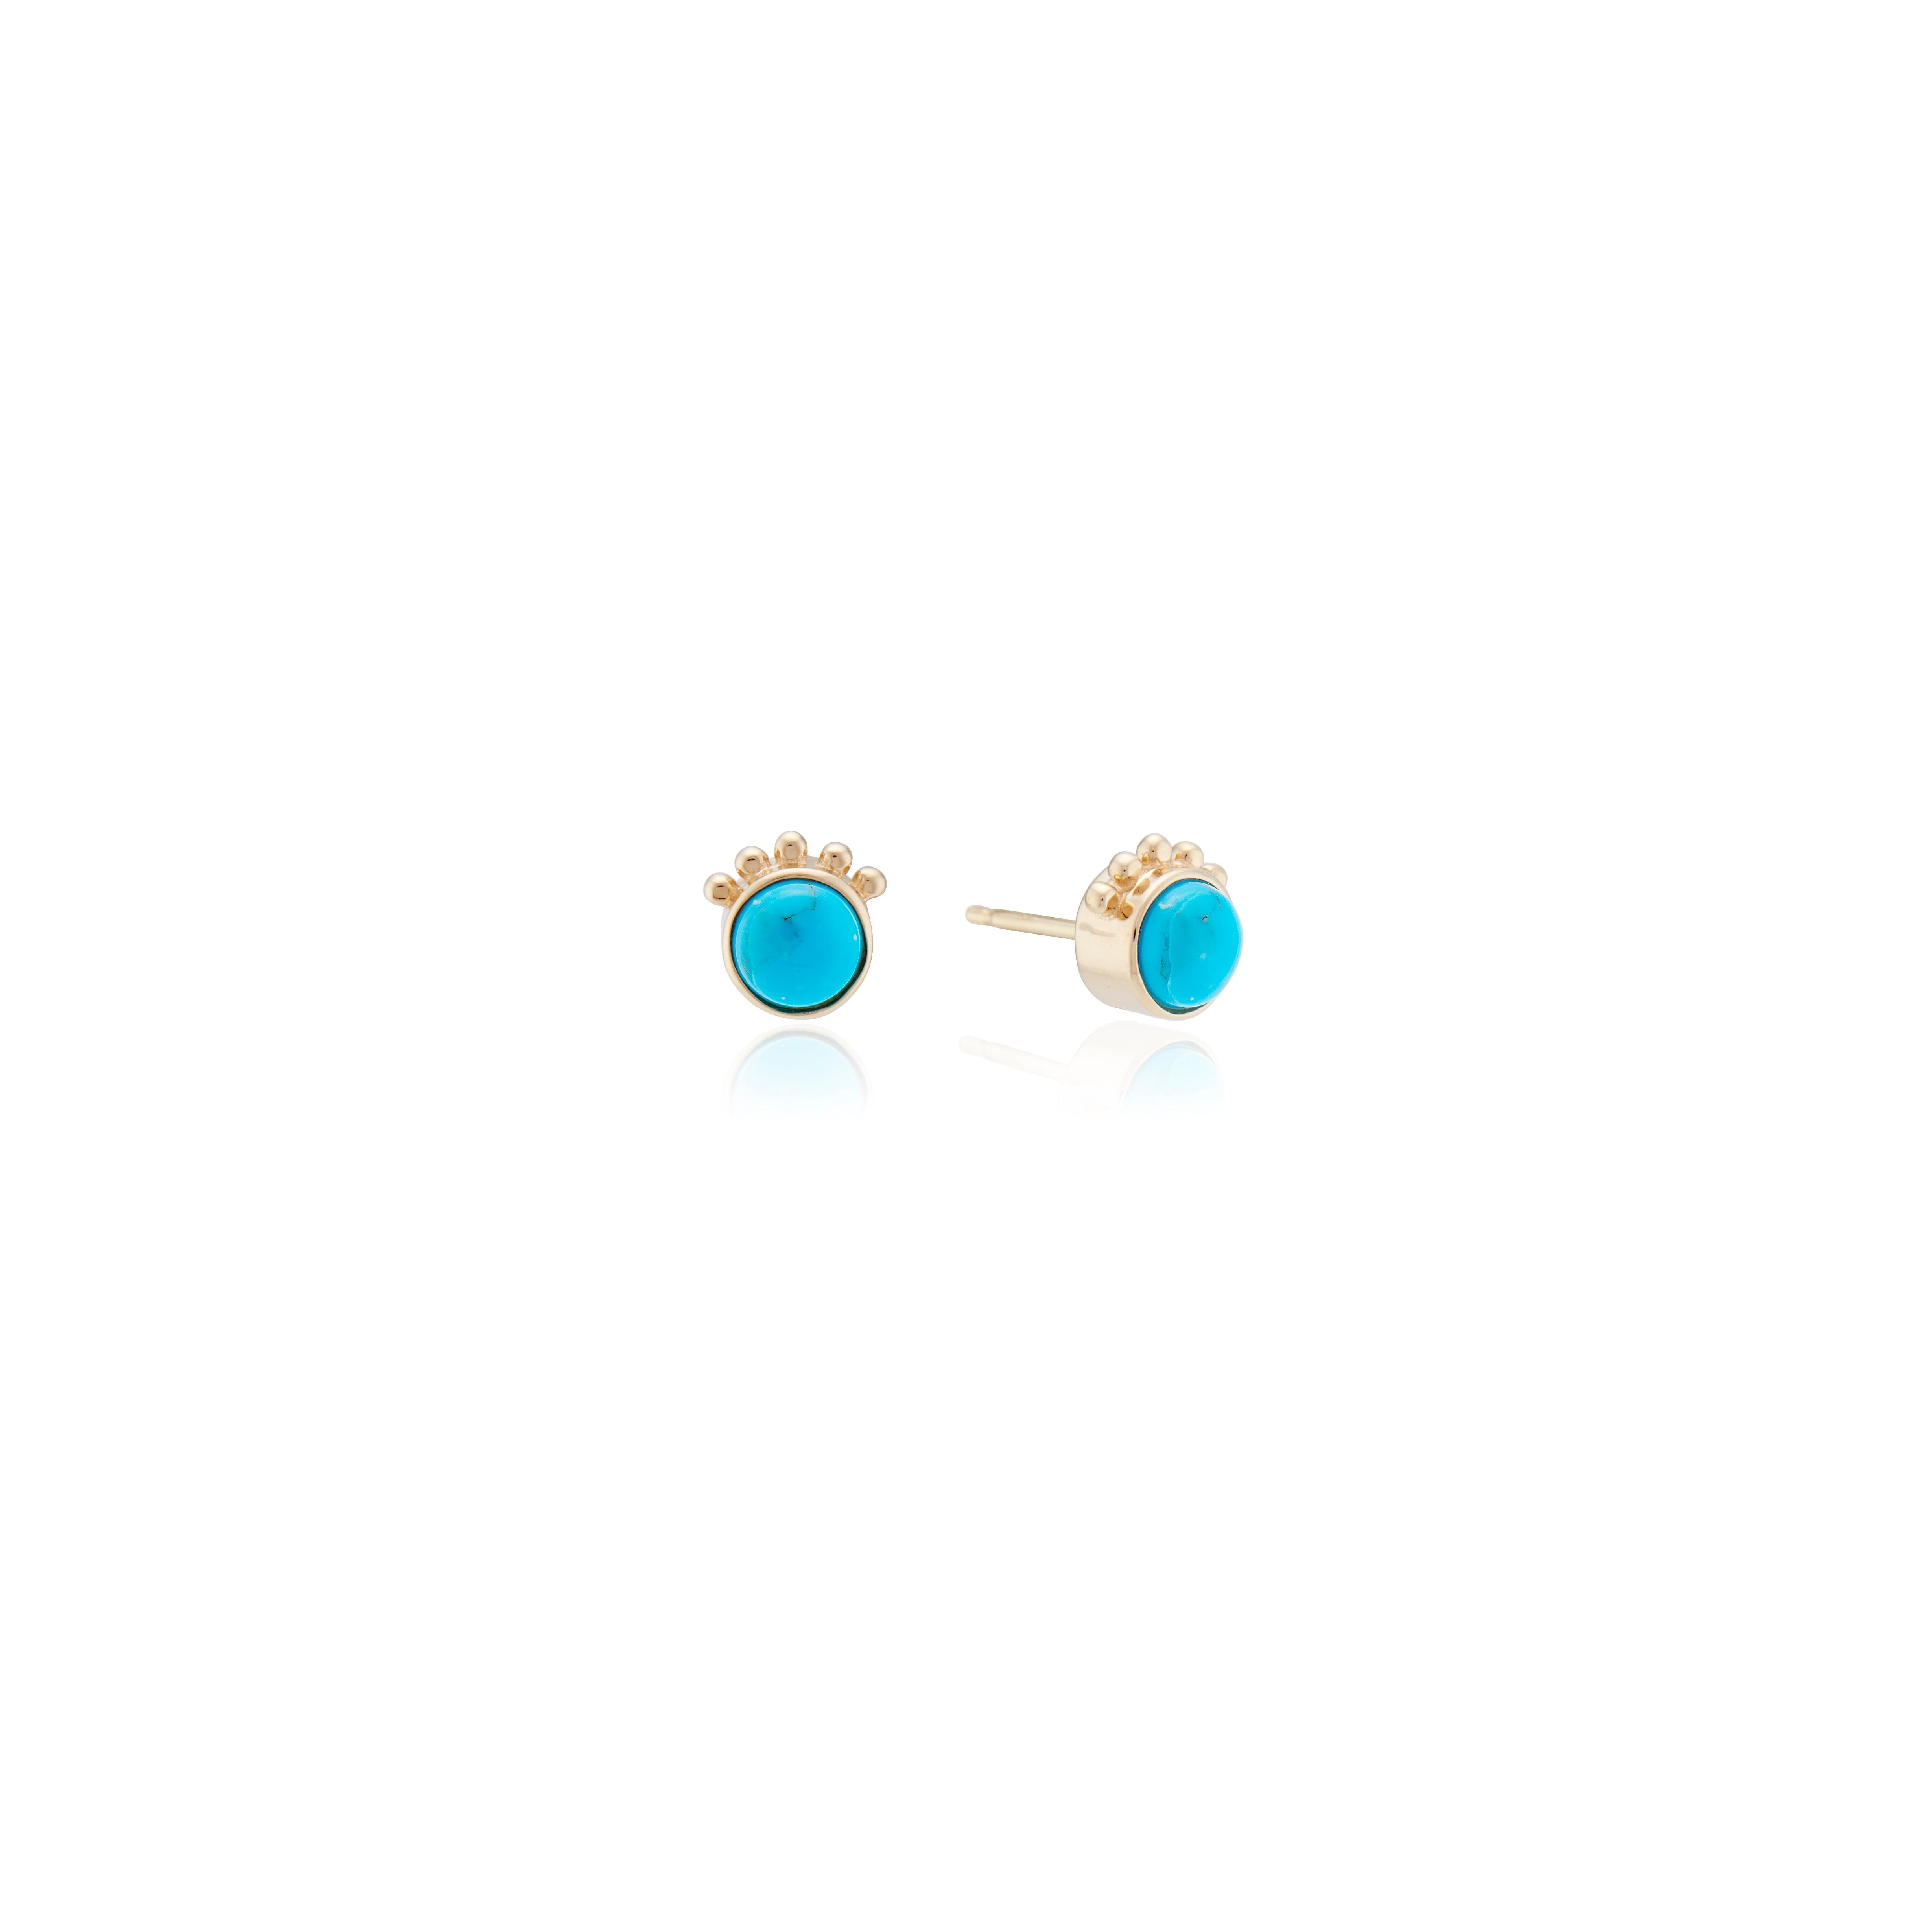 14k Yellow Or White Gold Blue Turquoise Ball All Sizes Stud Earrings 14 k